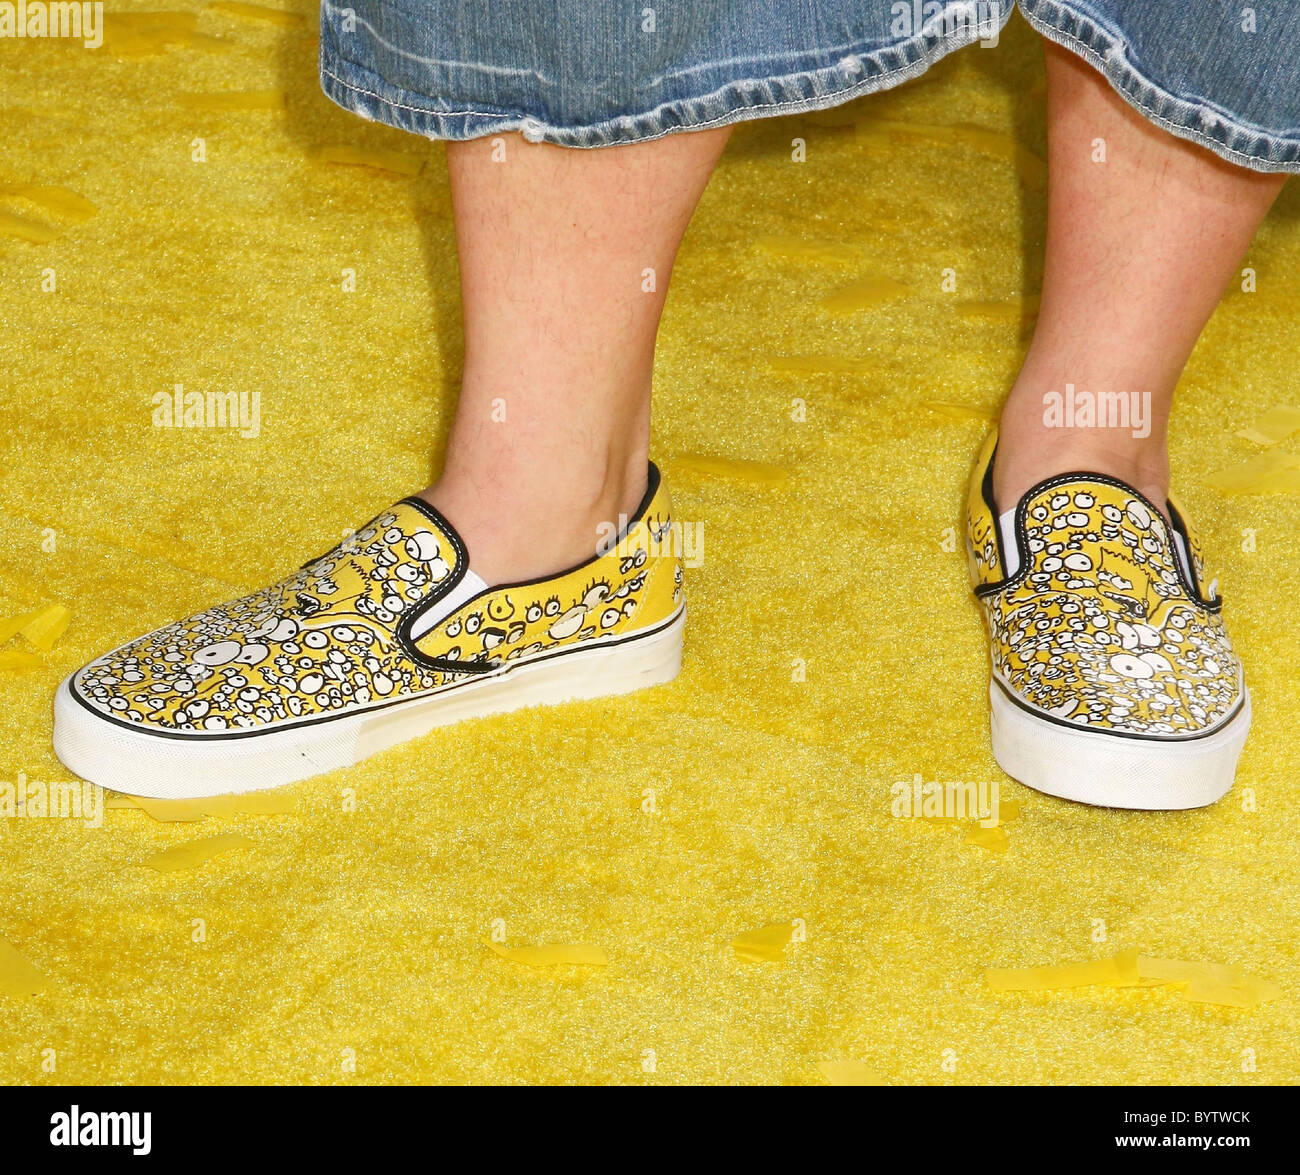 Kevin Smith S Vans With Bart Simpson On It The Simpsons Movie World Stock Photo Alamy